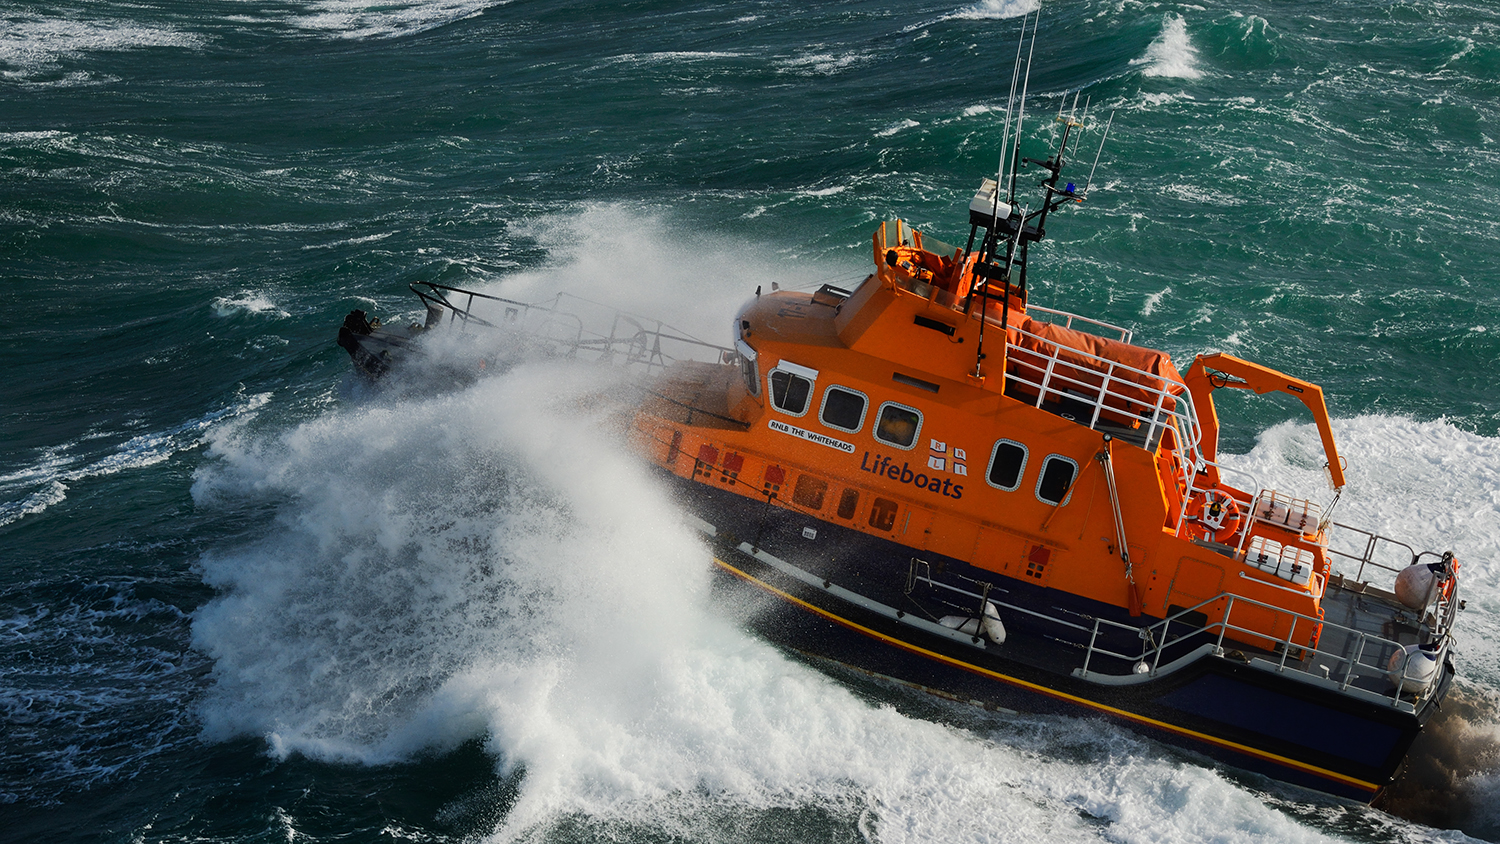 St Mary's Severn class lifeboat powering through the waves